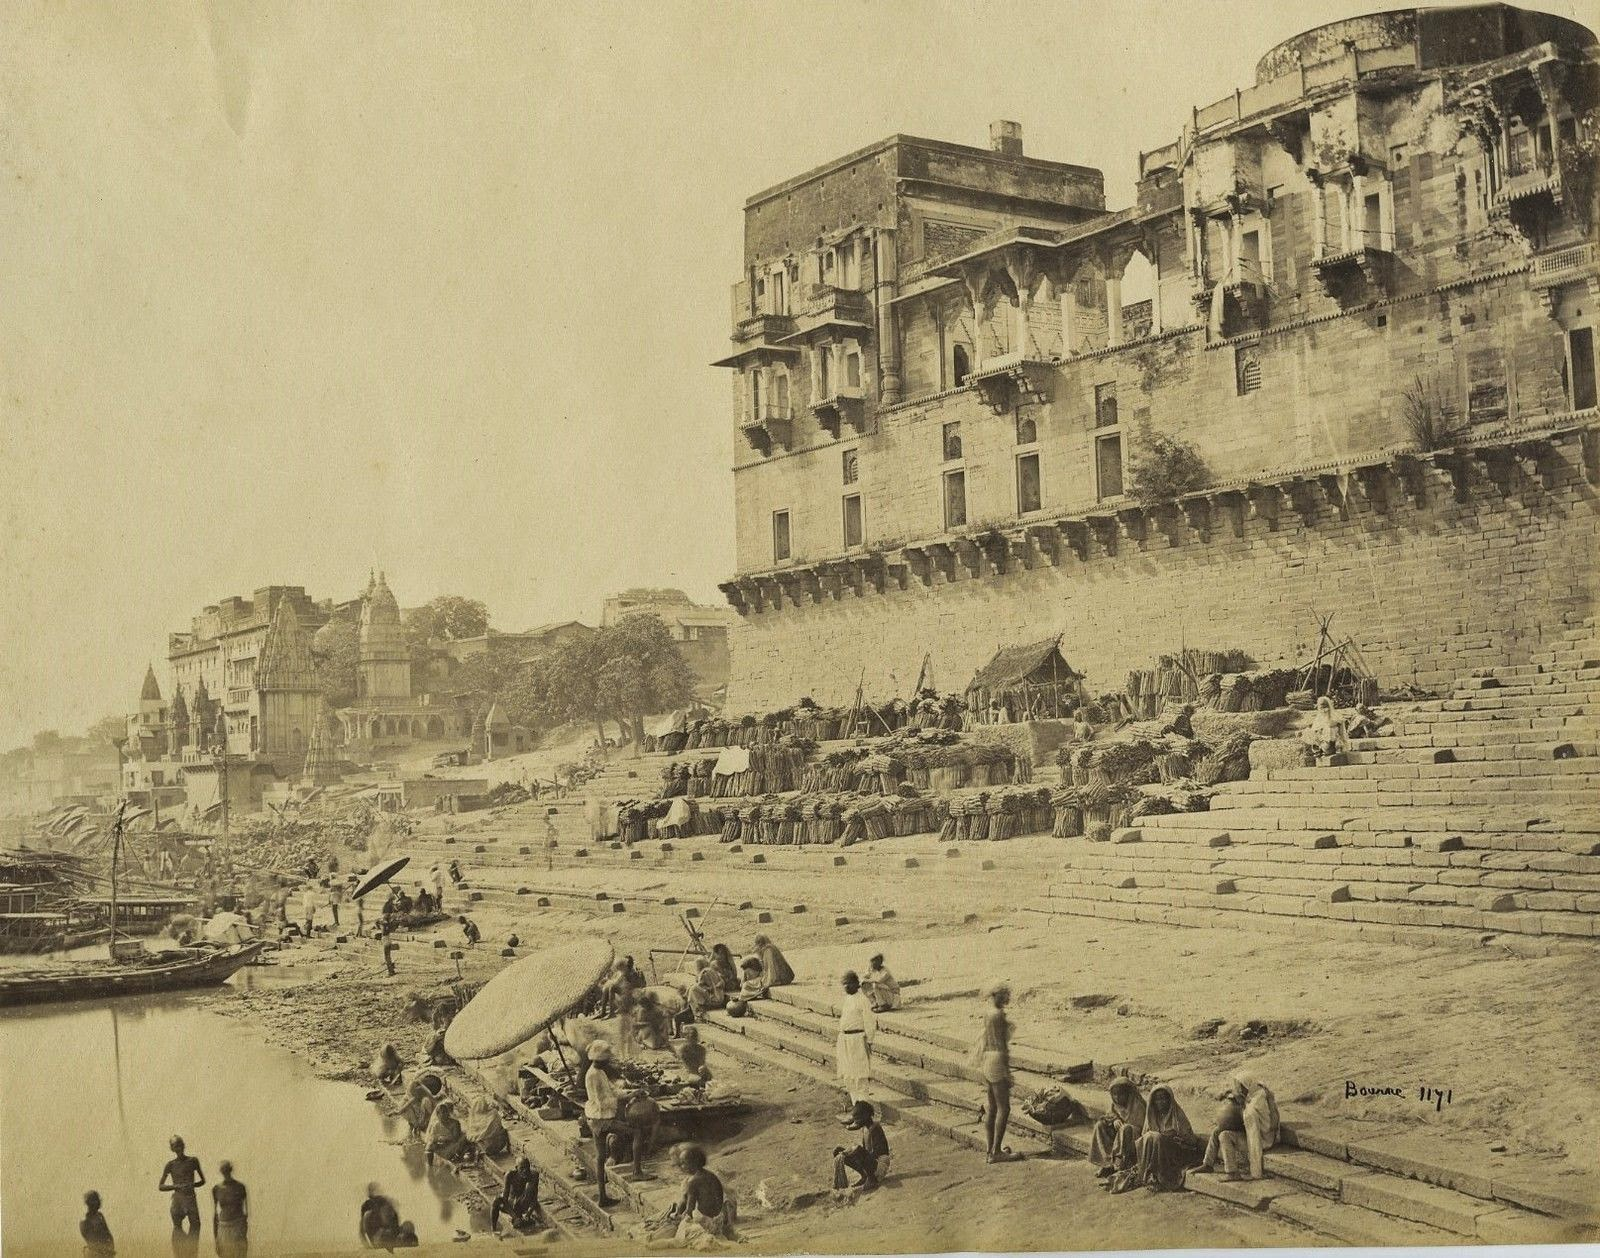 Varanasi Ghats, Temples and Architechtures - c1870's